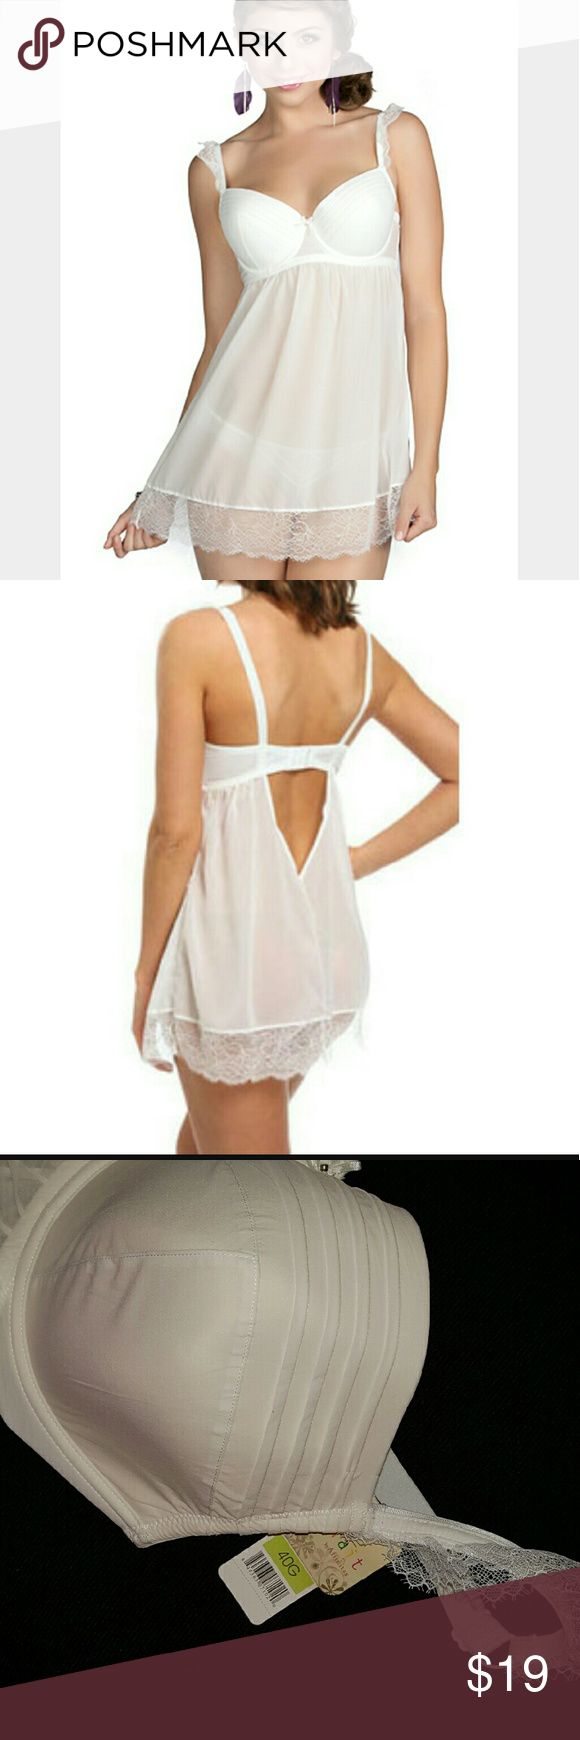 NWT UNDERWIRE BABYDOLL White 40 G New with Tags! Color White. Size 40G. This Parfait by Affinitas Intimates babydoll has molded cups, pintuck seam cups, a deep V- shape back and flutter lace. No panties included. Bridal lingerie Wedding  Valentine's Day Intimates & Sleepwear Chemises & Slips